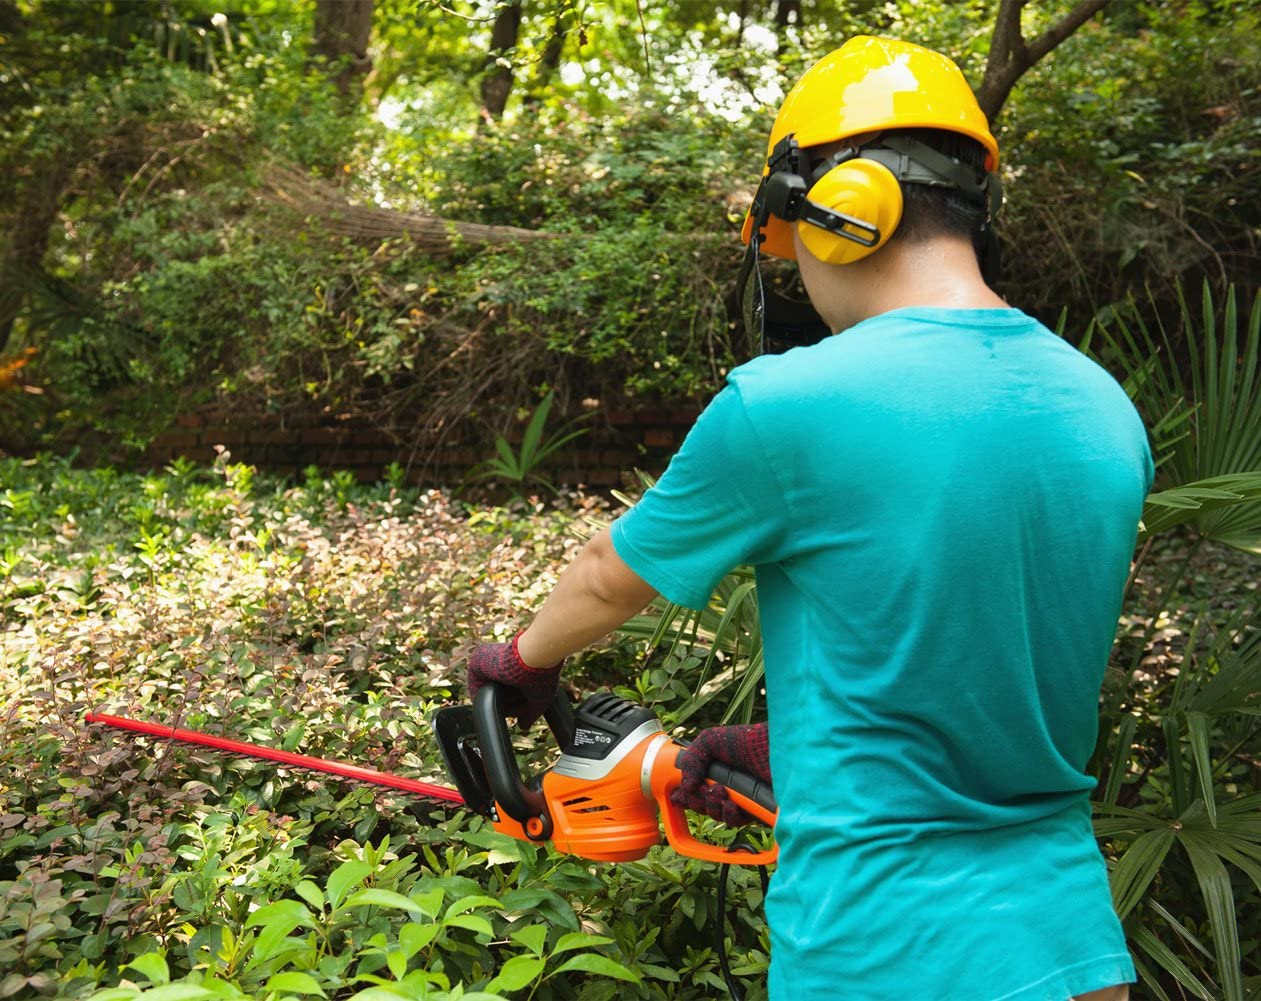 Best Corded Hedge Trimmers Reviews